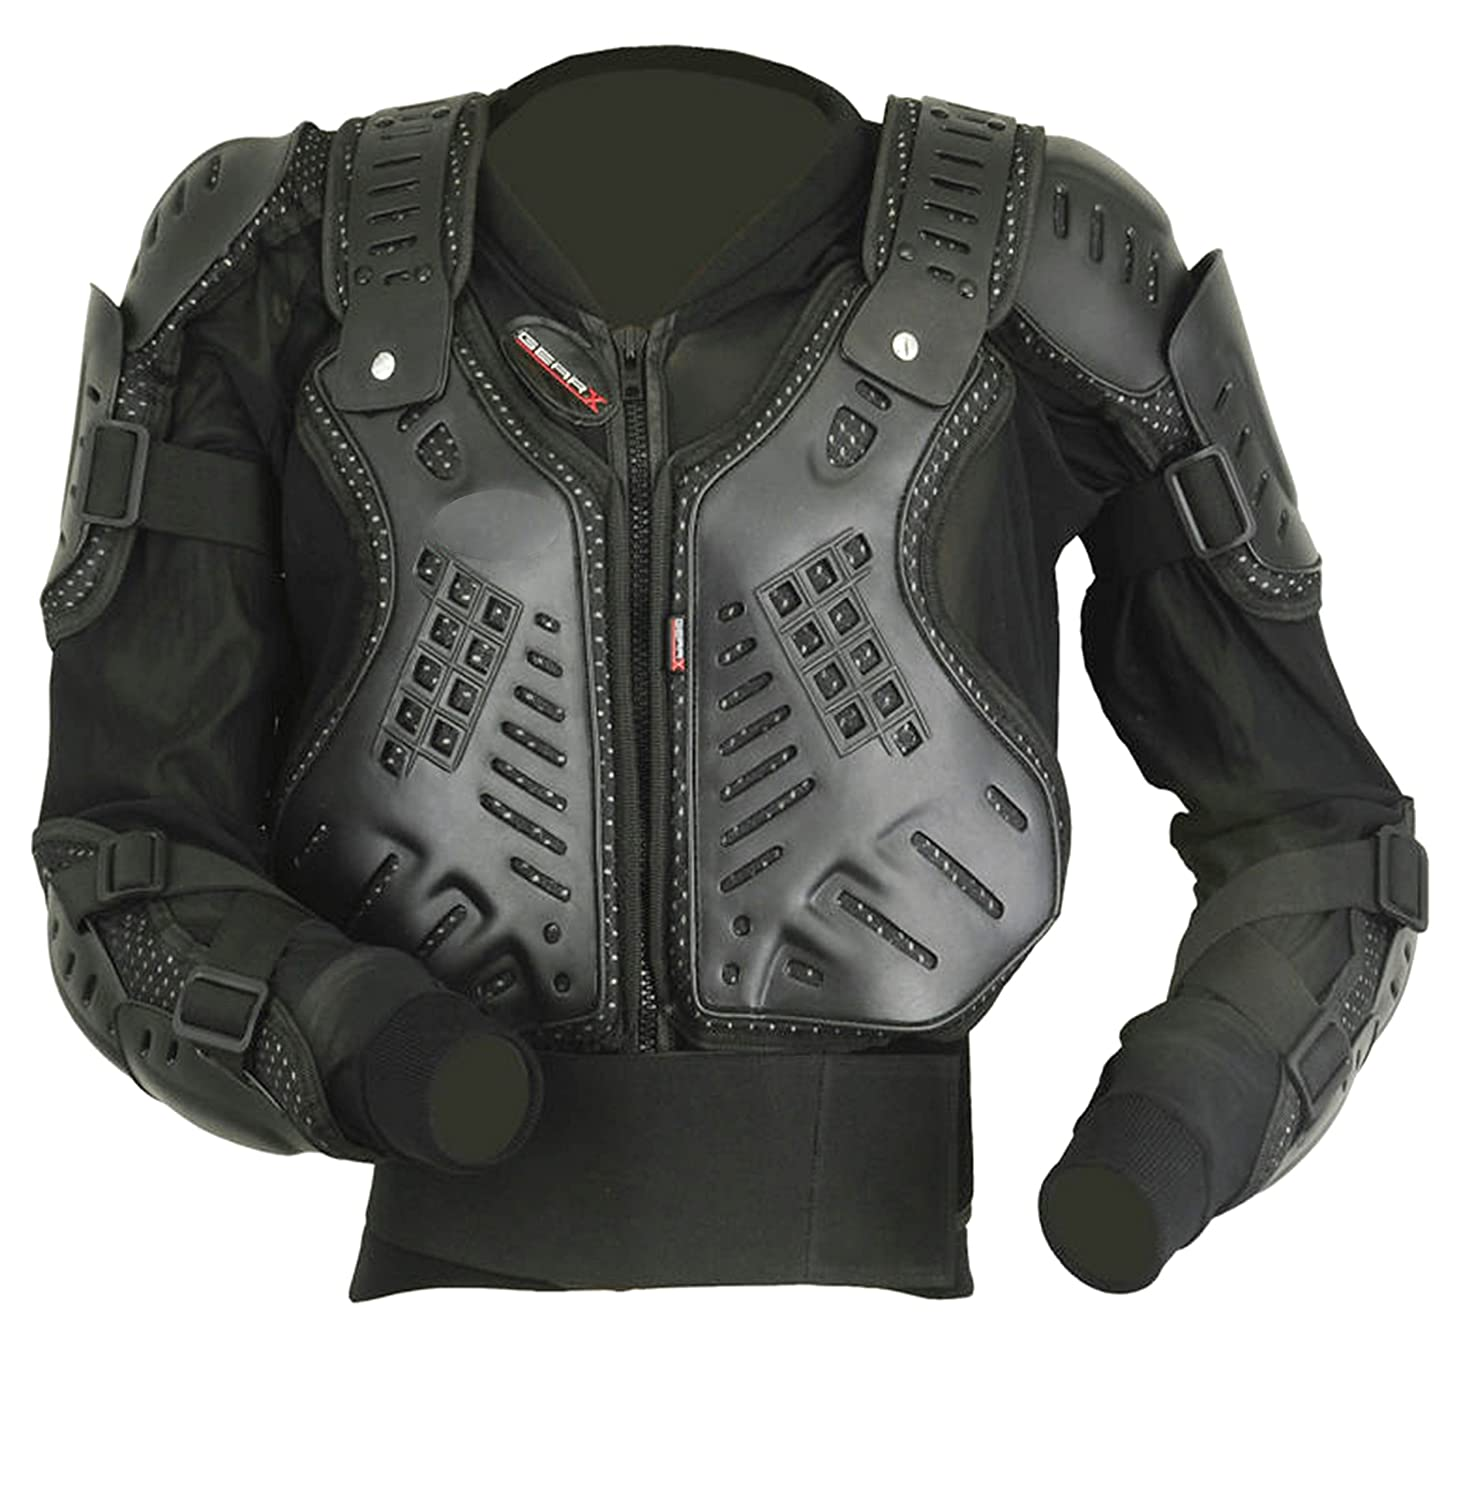 GearX Enfants Motocross Armour Dos Protection Veste CE, L